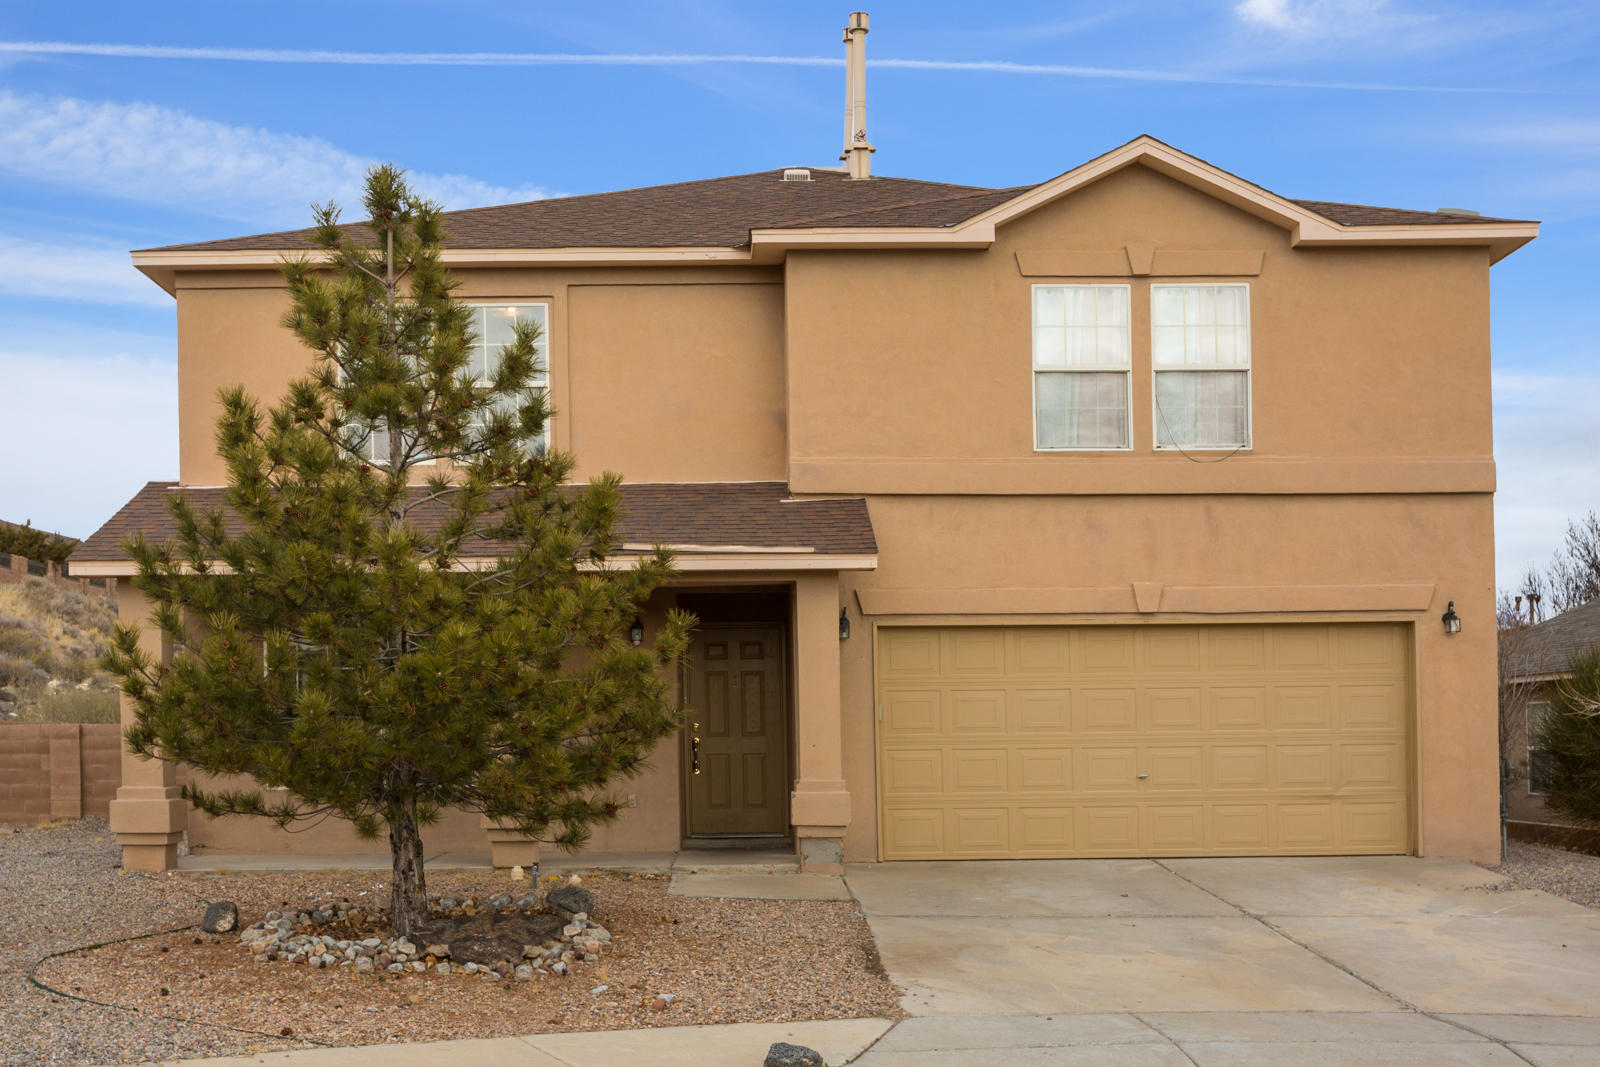 Need room? This home is for you! Humongous living room plus open kitchen/dining family room. Spacious master bedroom with master bath and walk in closets that have plenty of room for all your belongings. 16x9 Loft can be used for your personal purpose is . First story has ceramic tile, real wood floors on stairs and second level nor carpet. First 3 photos are virtually staged.